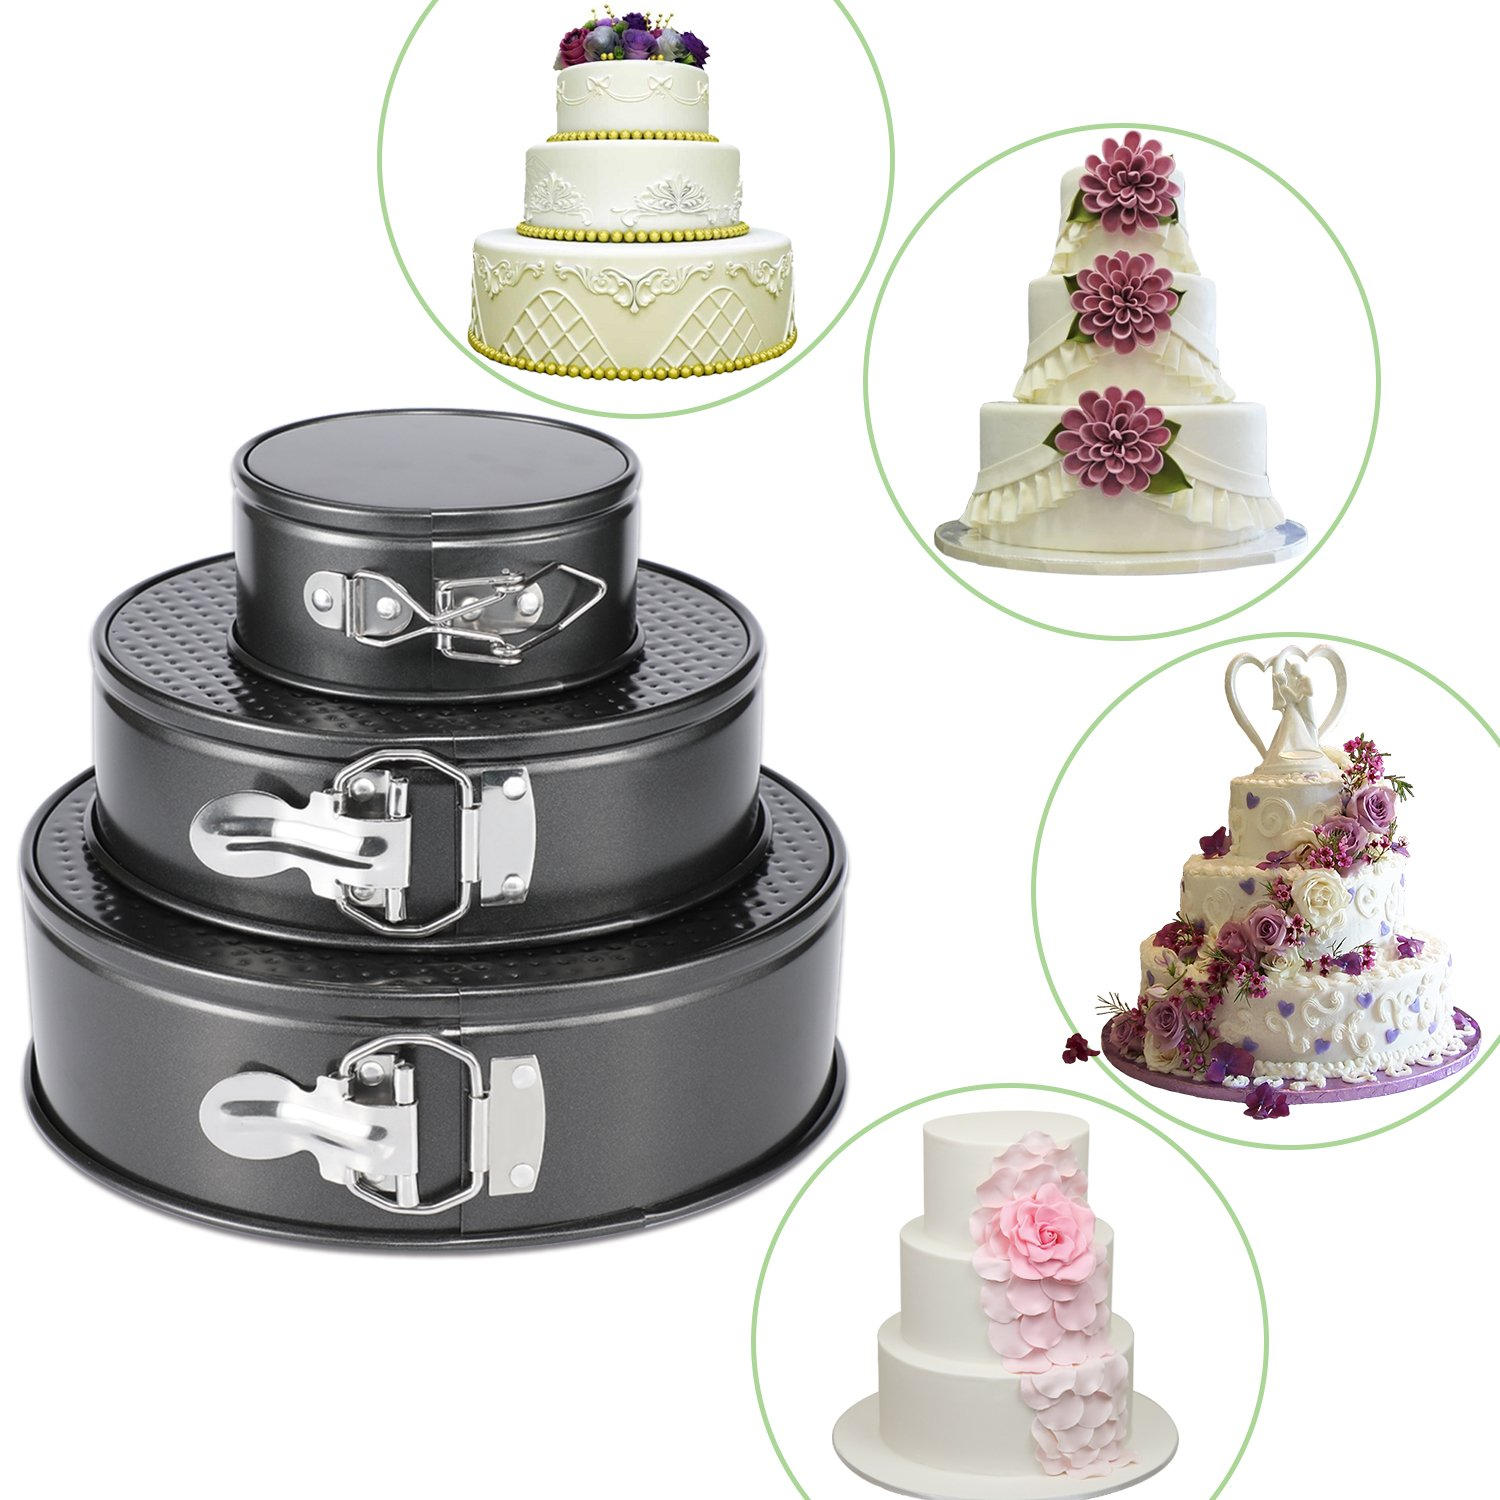 Hiware Springform Pan Set of 3 Non-stick Cheesecake Pan, Leakproof Round Cake Pan Set Includes 3 Piece 4'' 7'' 9'' Springform Pan, Icing Spatula and Icing Smoother by Hiware (Image #7)